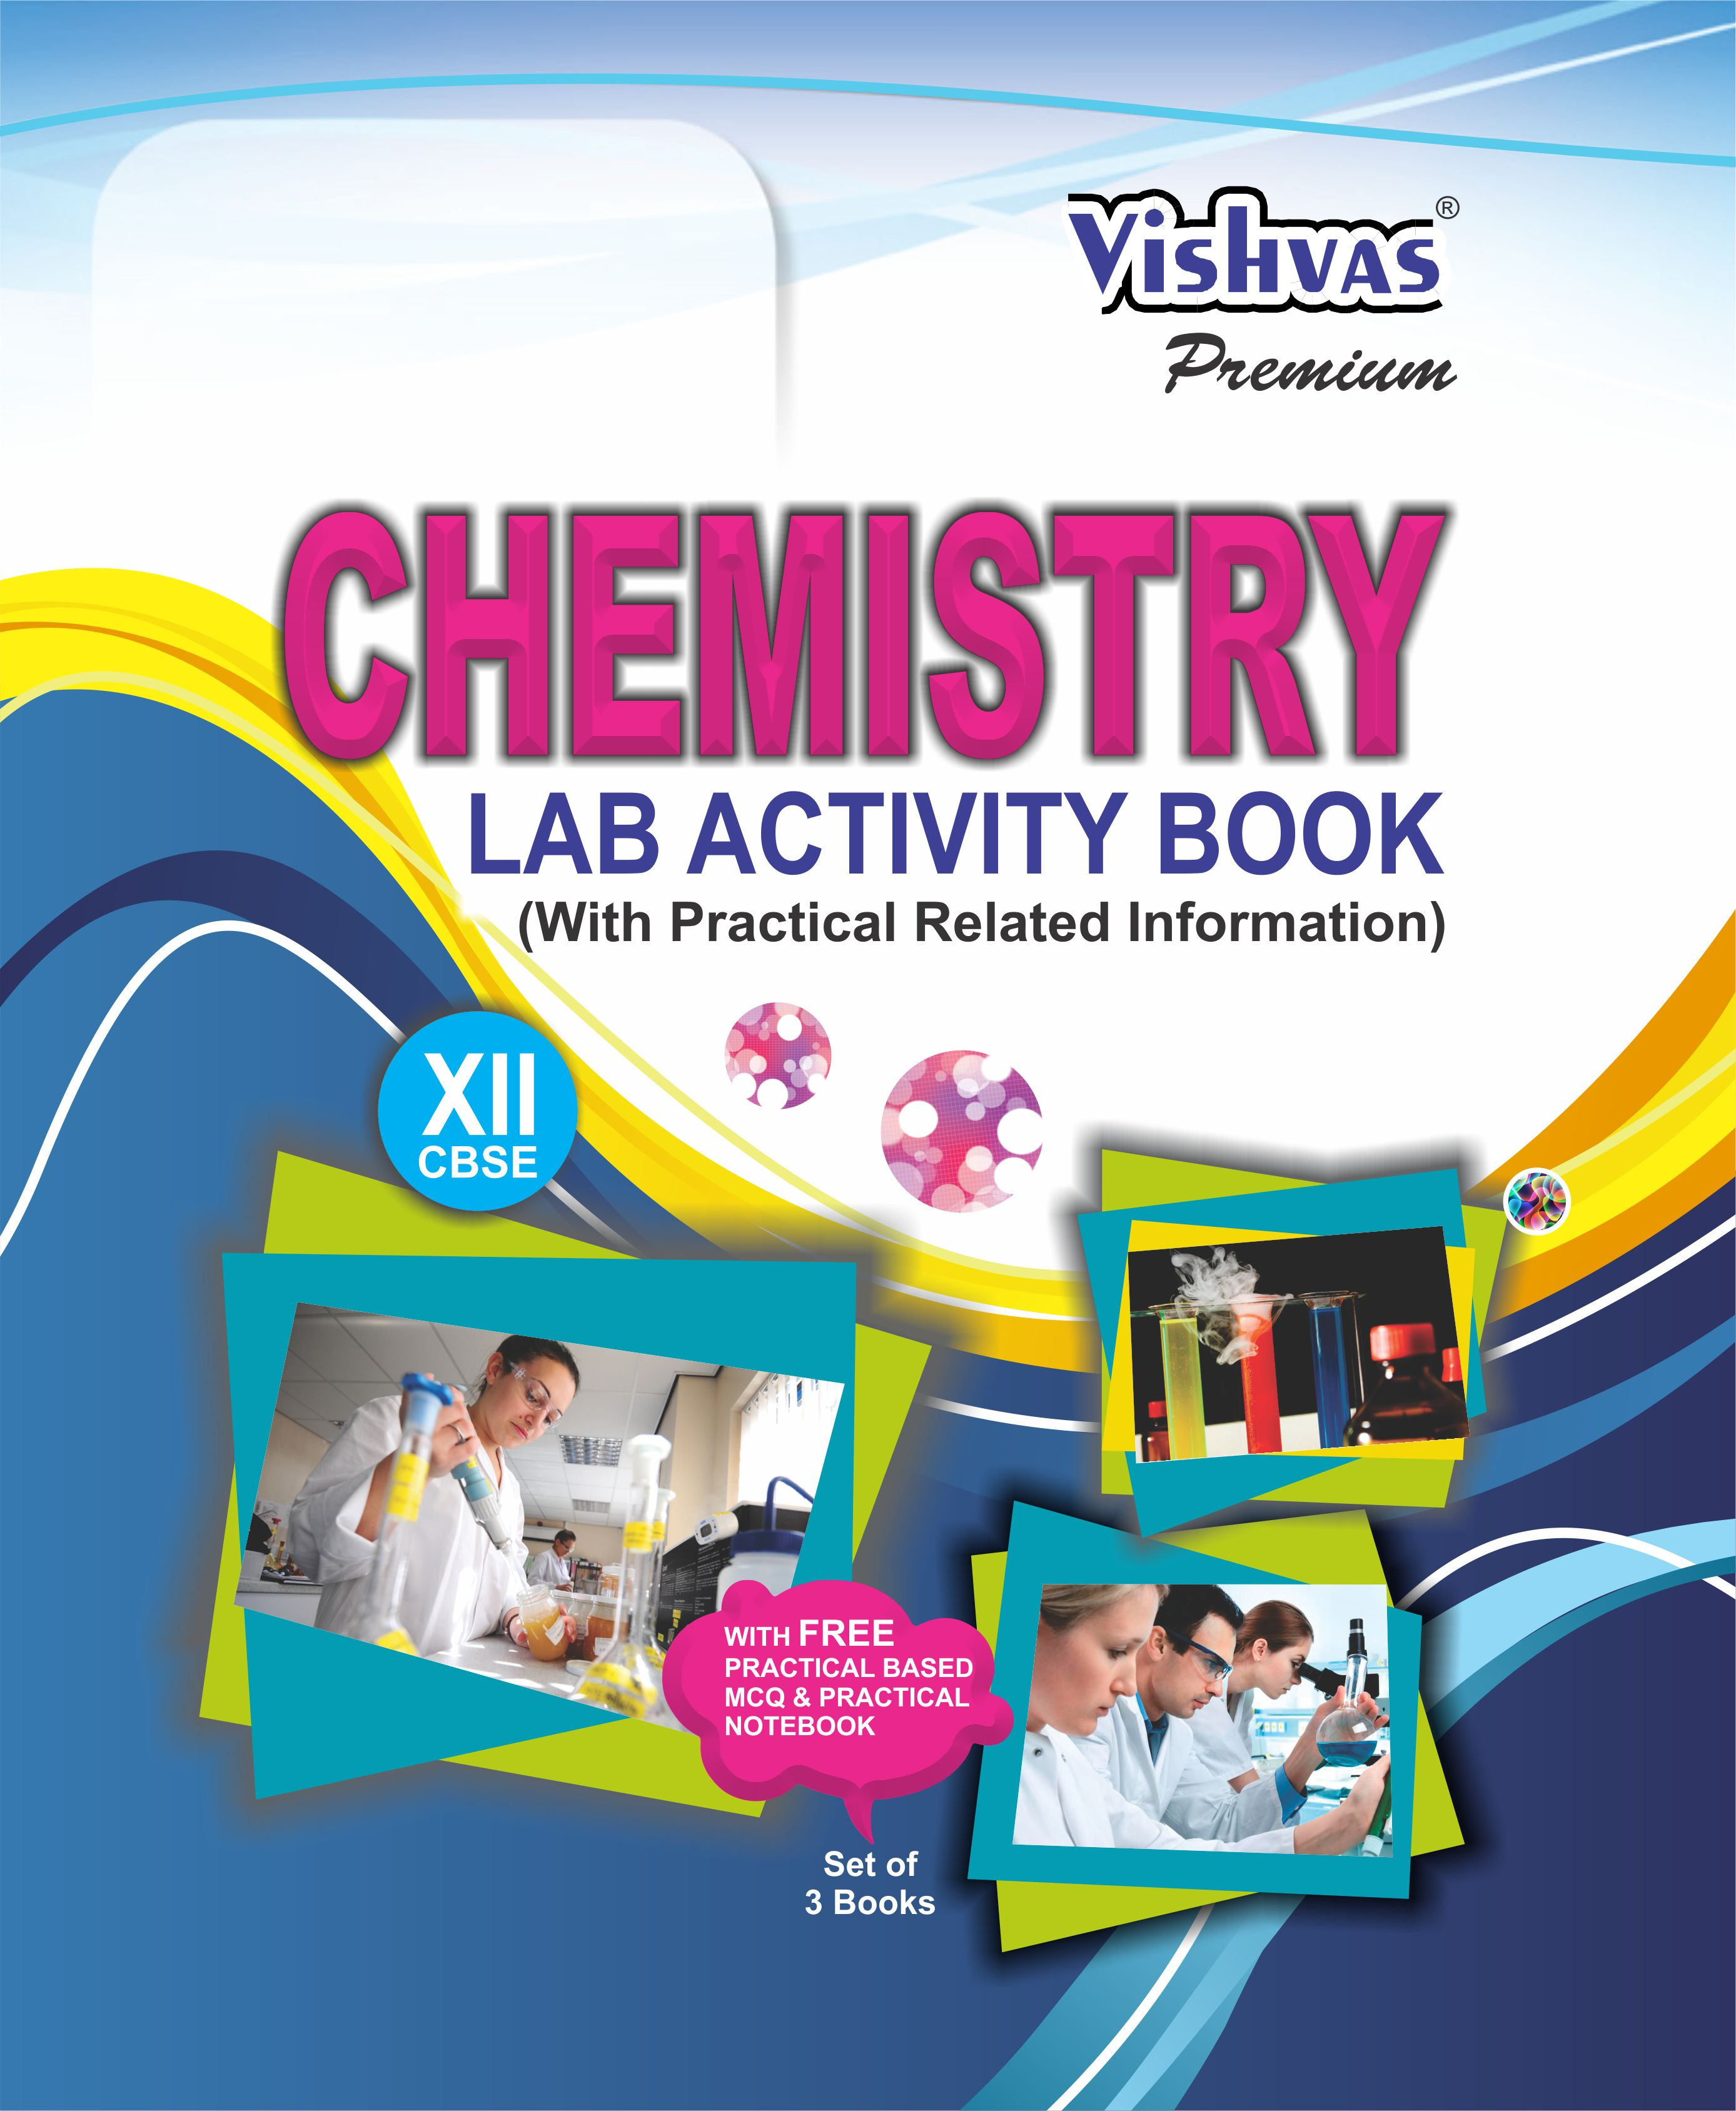 CBSE-2019-Chemistry Lab Activity Book-Class-XII- Free Practical Based MCQ &  Practical Notebook) Paperback, Set Of 3 Books-vishvasbooks